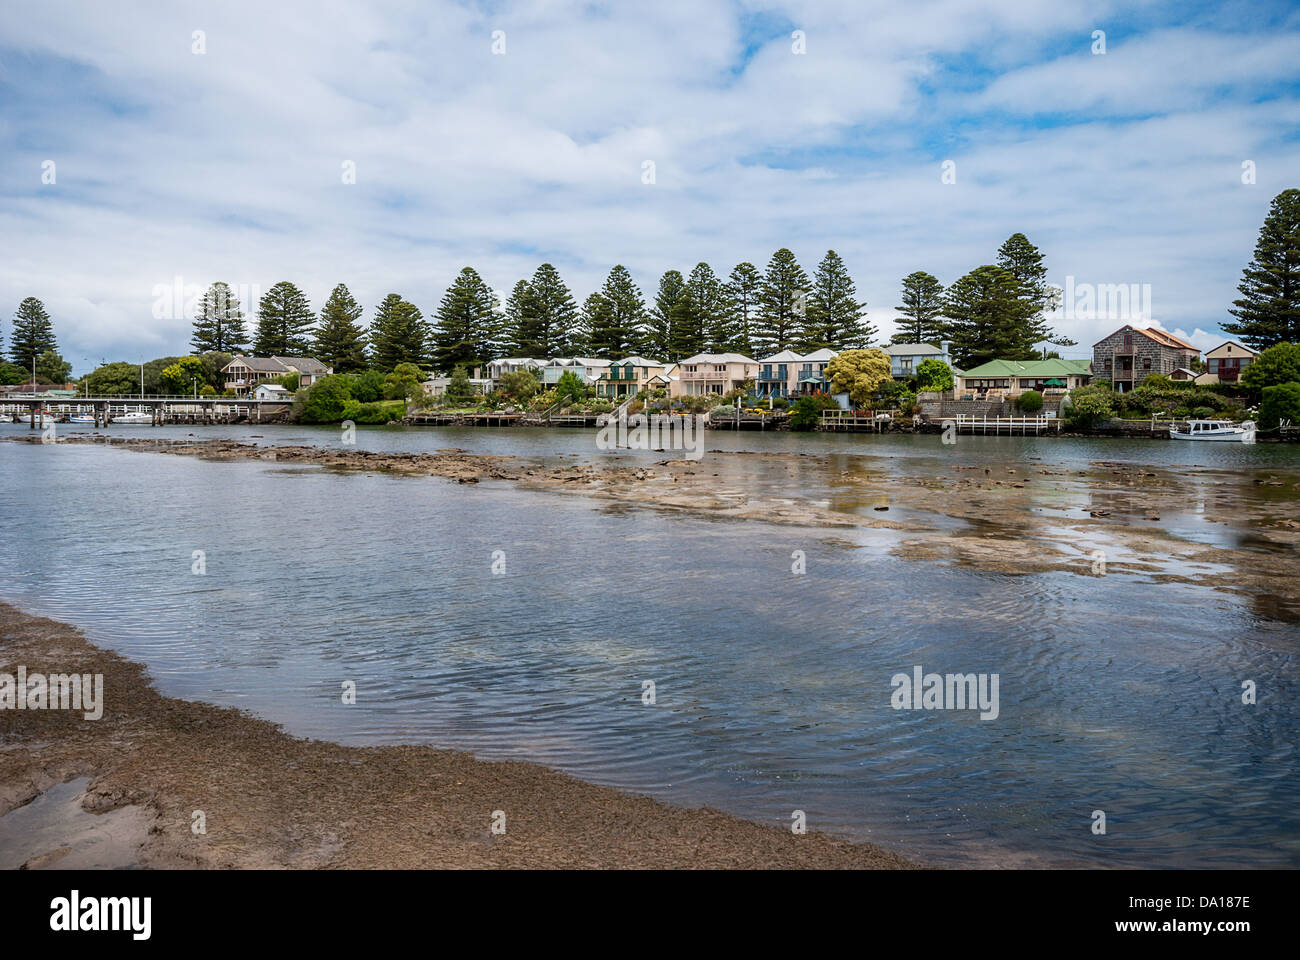 The picturesque fishing town of Port Fairy on the western end of the Great Ocean Road in Victoria, Australia. - Stock Image